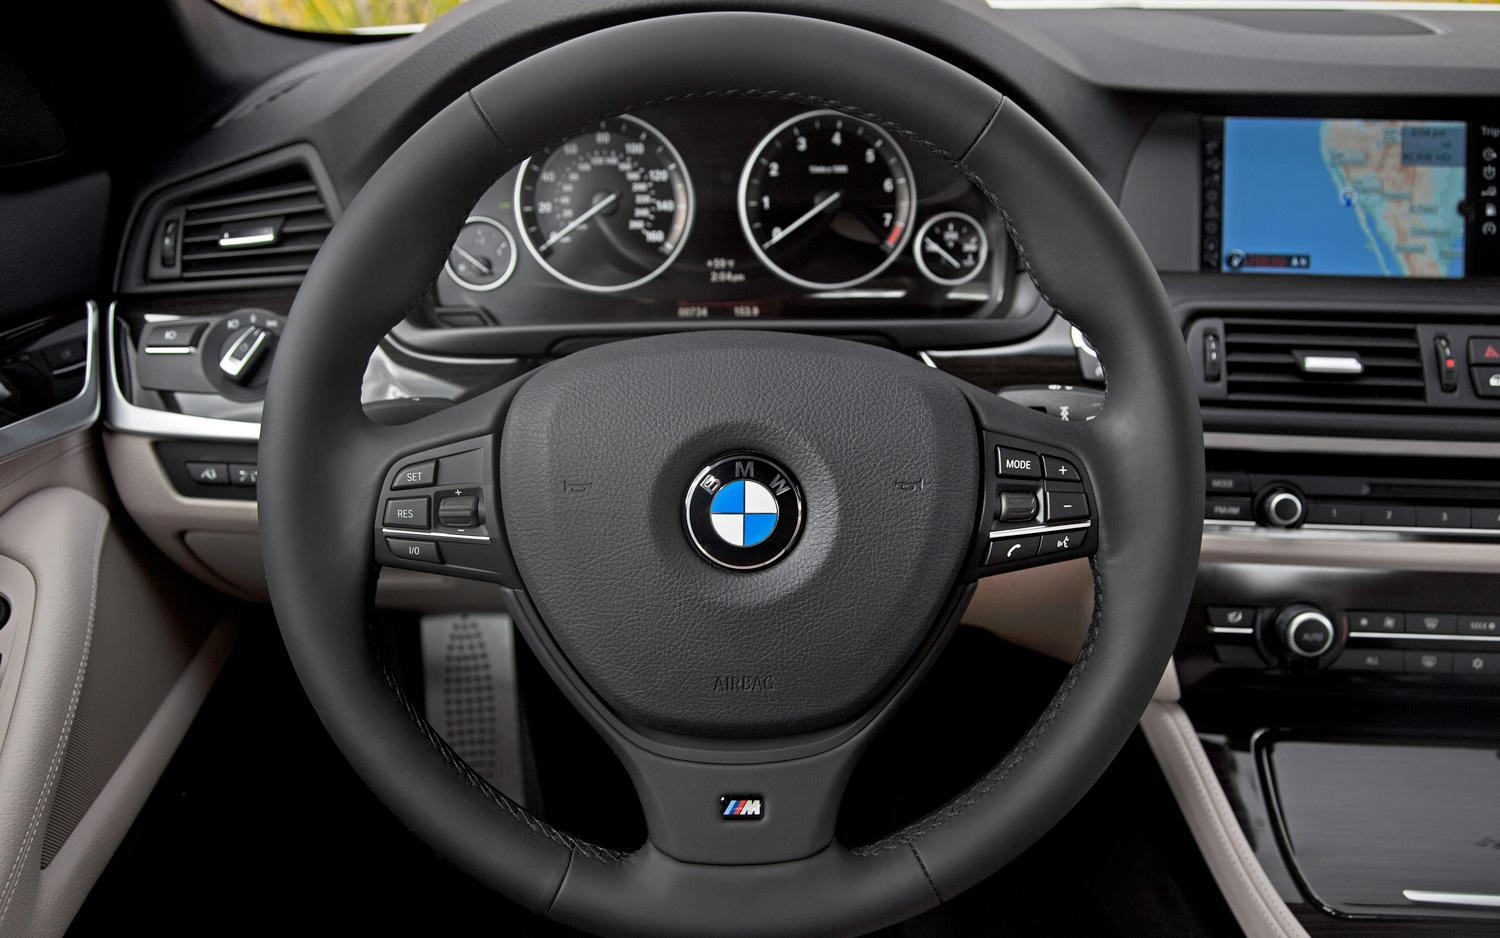 Steering wheel is one of the positions in car that shouldn't be decorated